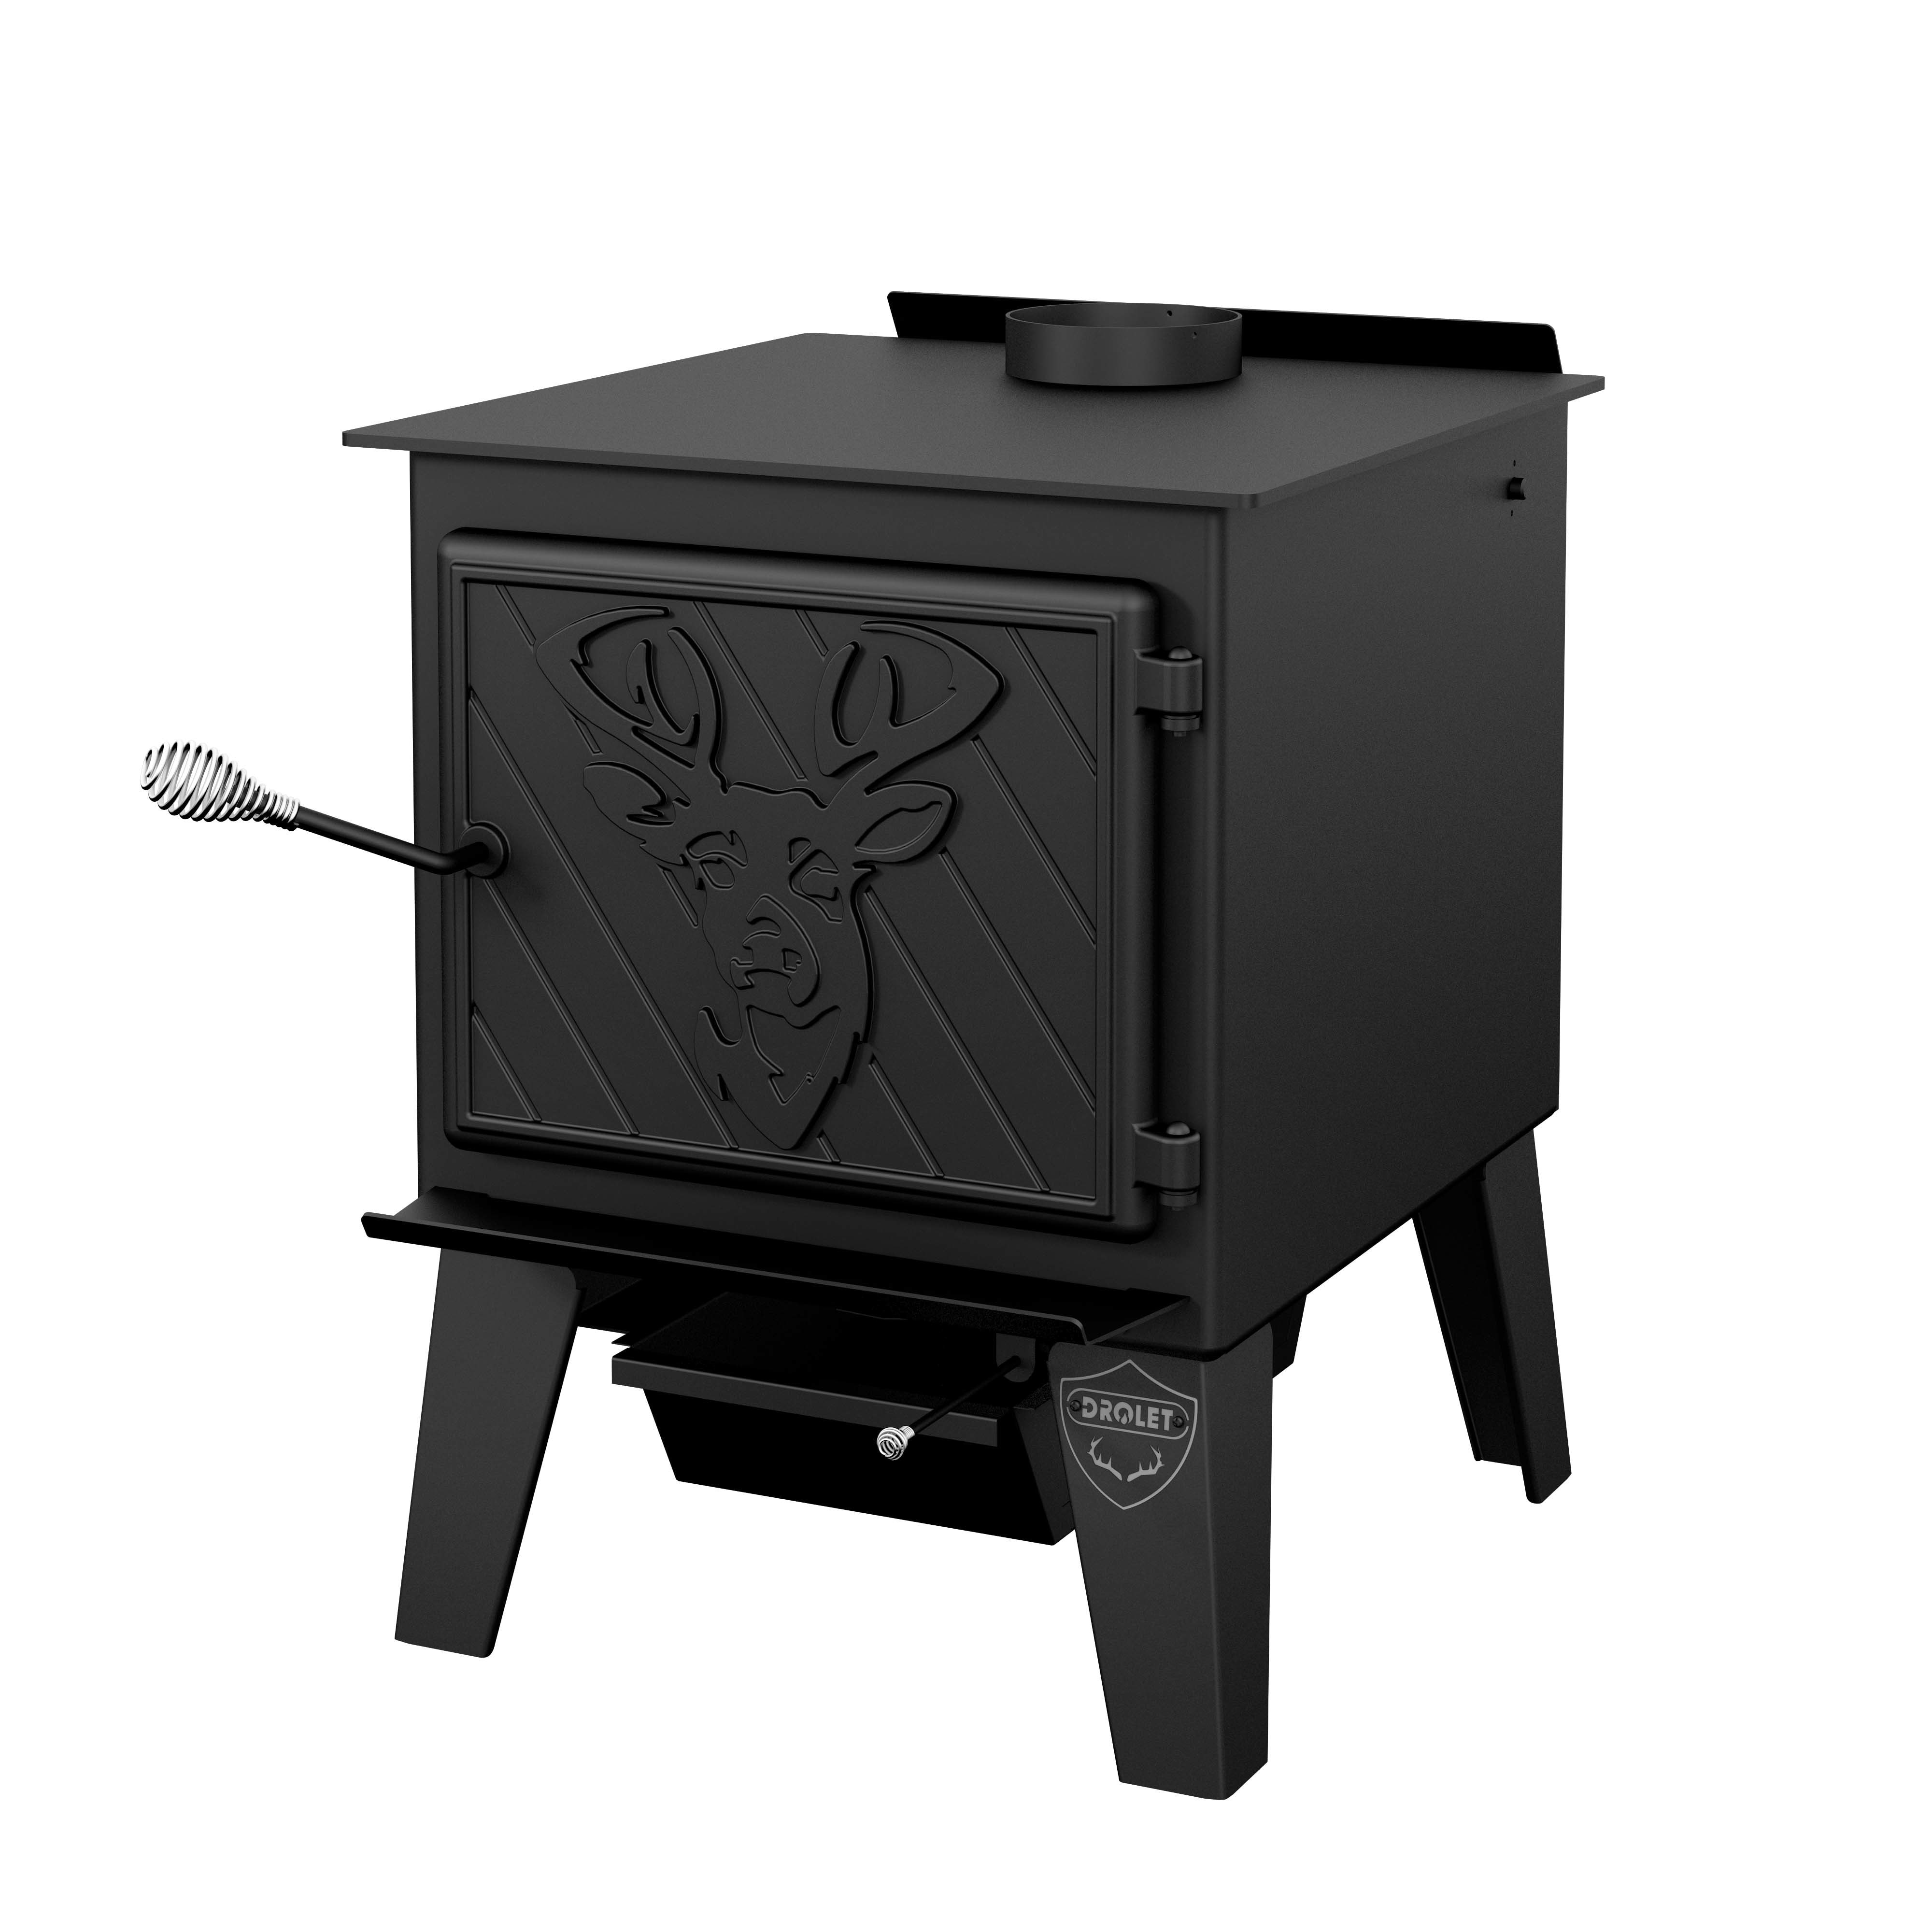 Drolet Black Stag Drolet wood stove Black Stag / Wood stove with ...